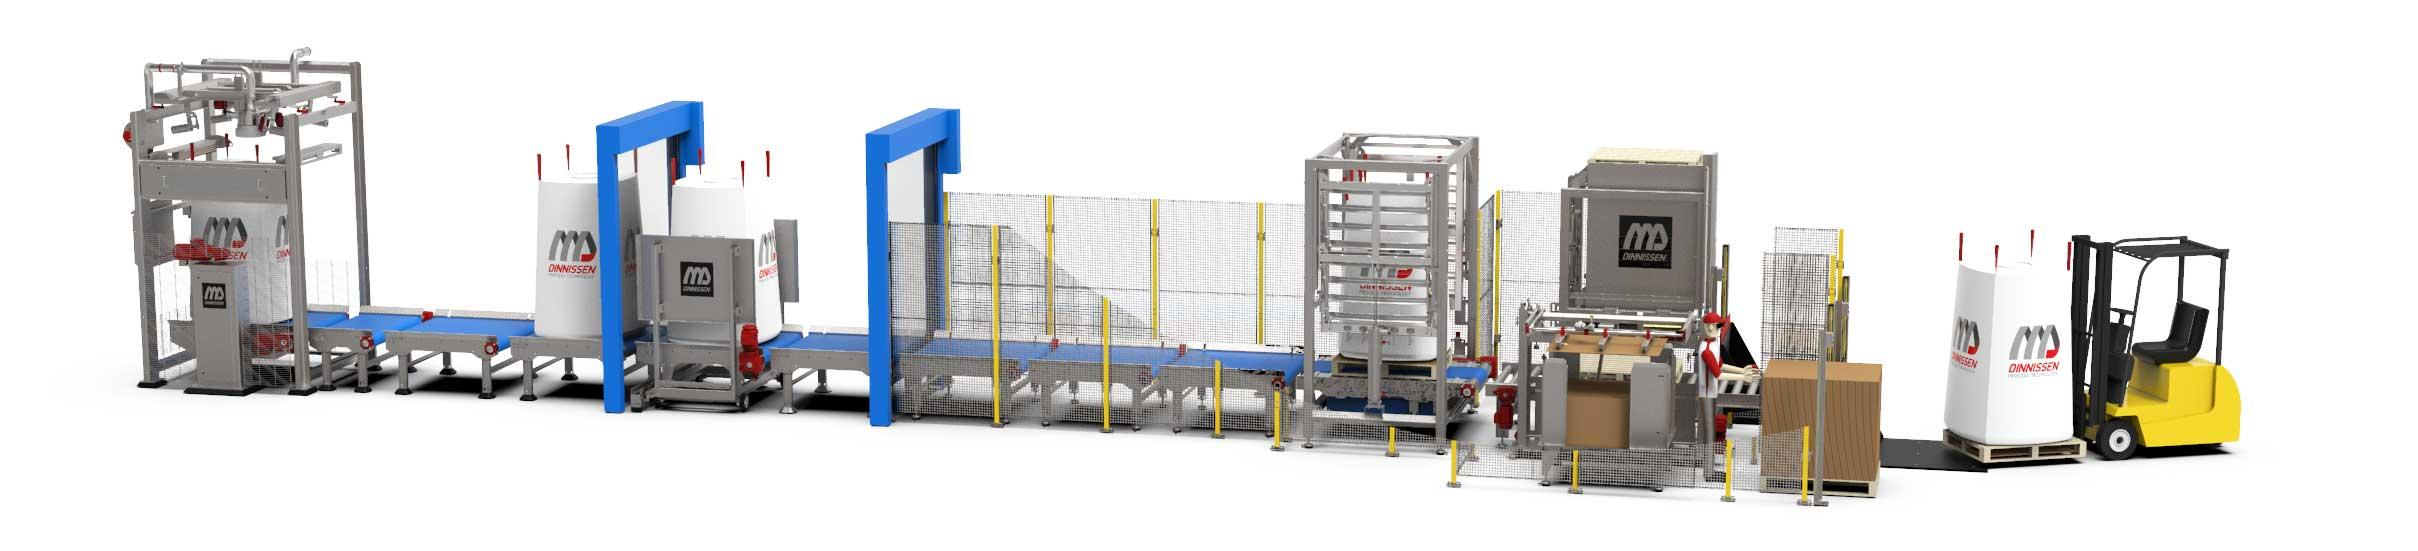 High-Care big-bag vullen en palletiseren